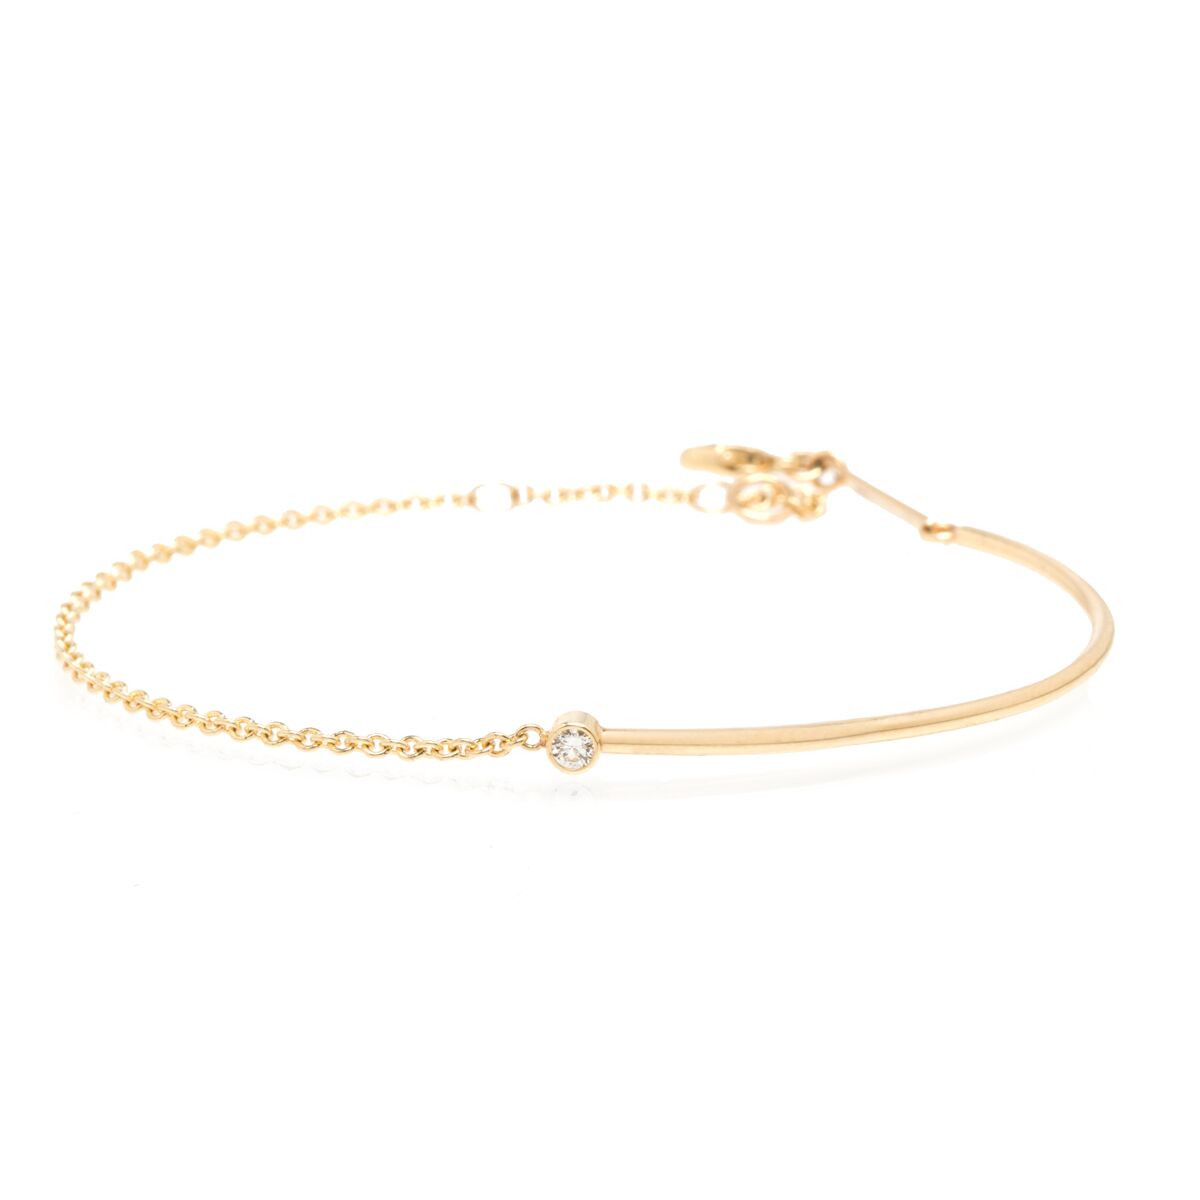 Zoe Chicco Wire and Chain Bracelet in Yellow Gold